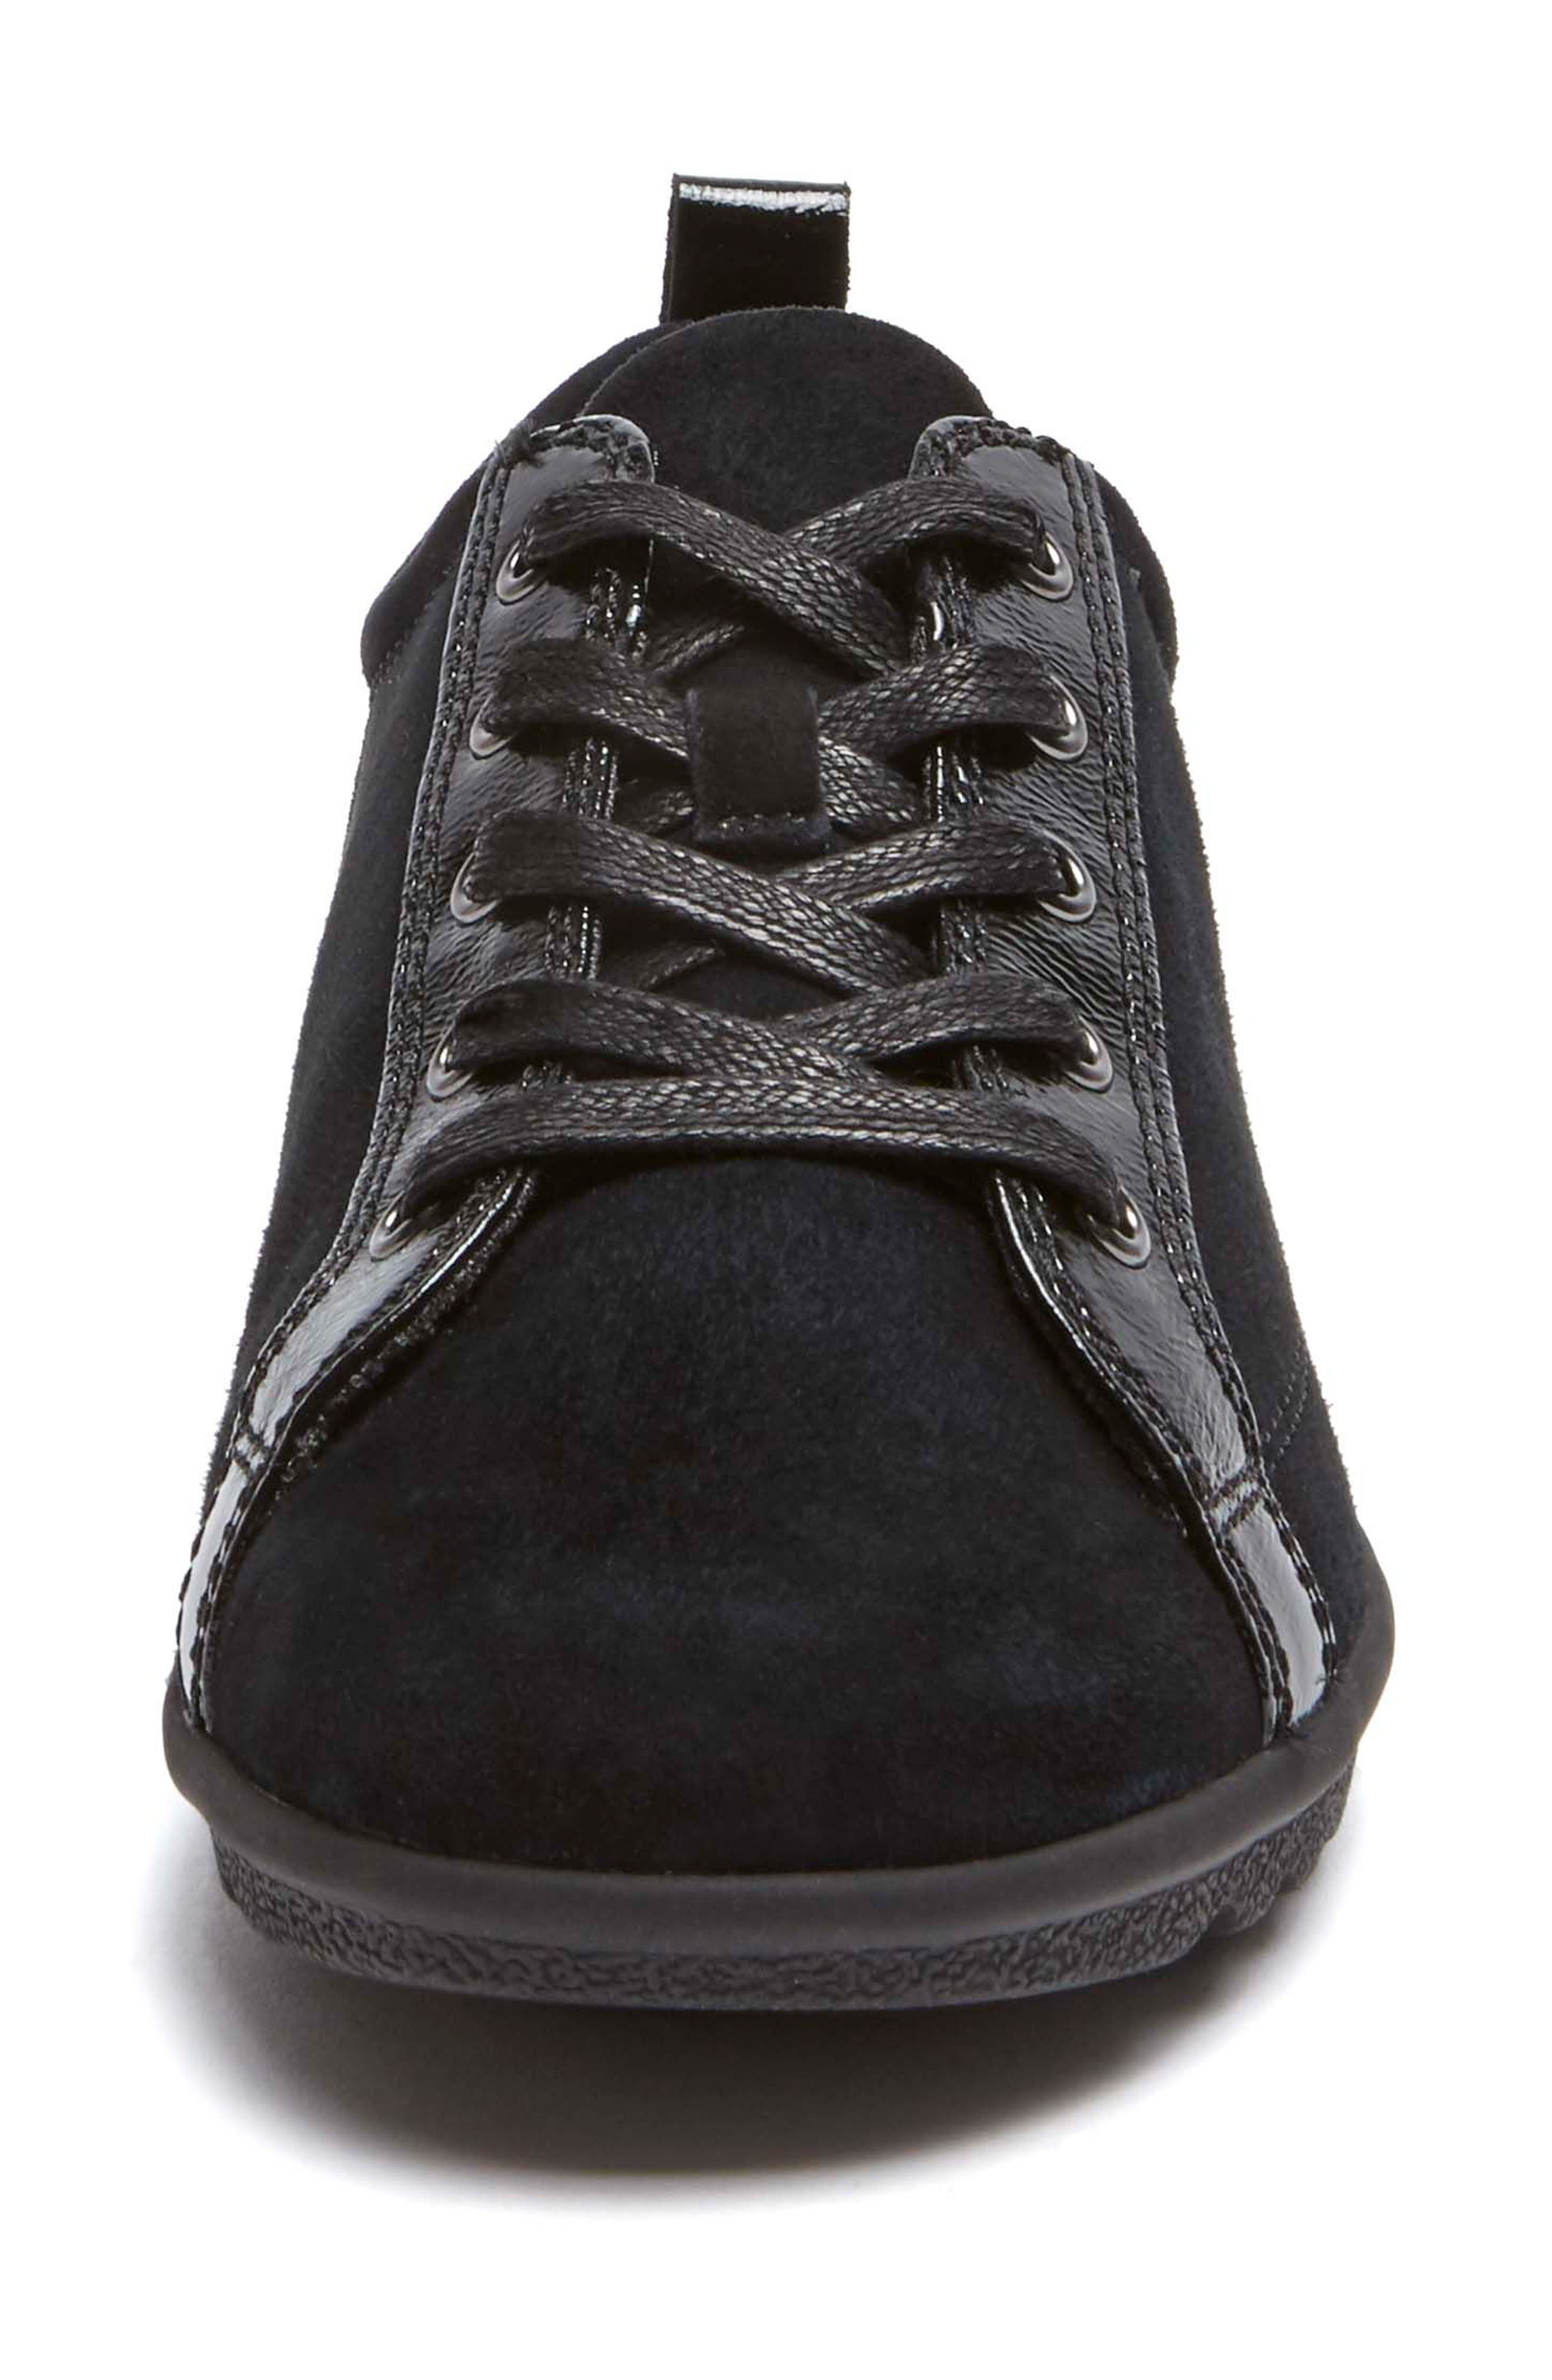 Chenole Wedge Sneaker,                             Alternate thumbnail 4, color,                             BLACK SUEDE